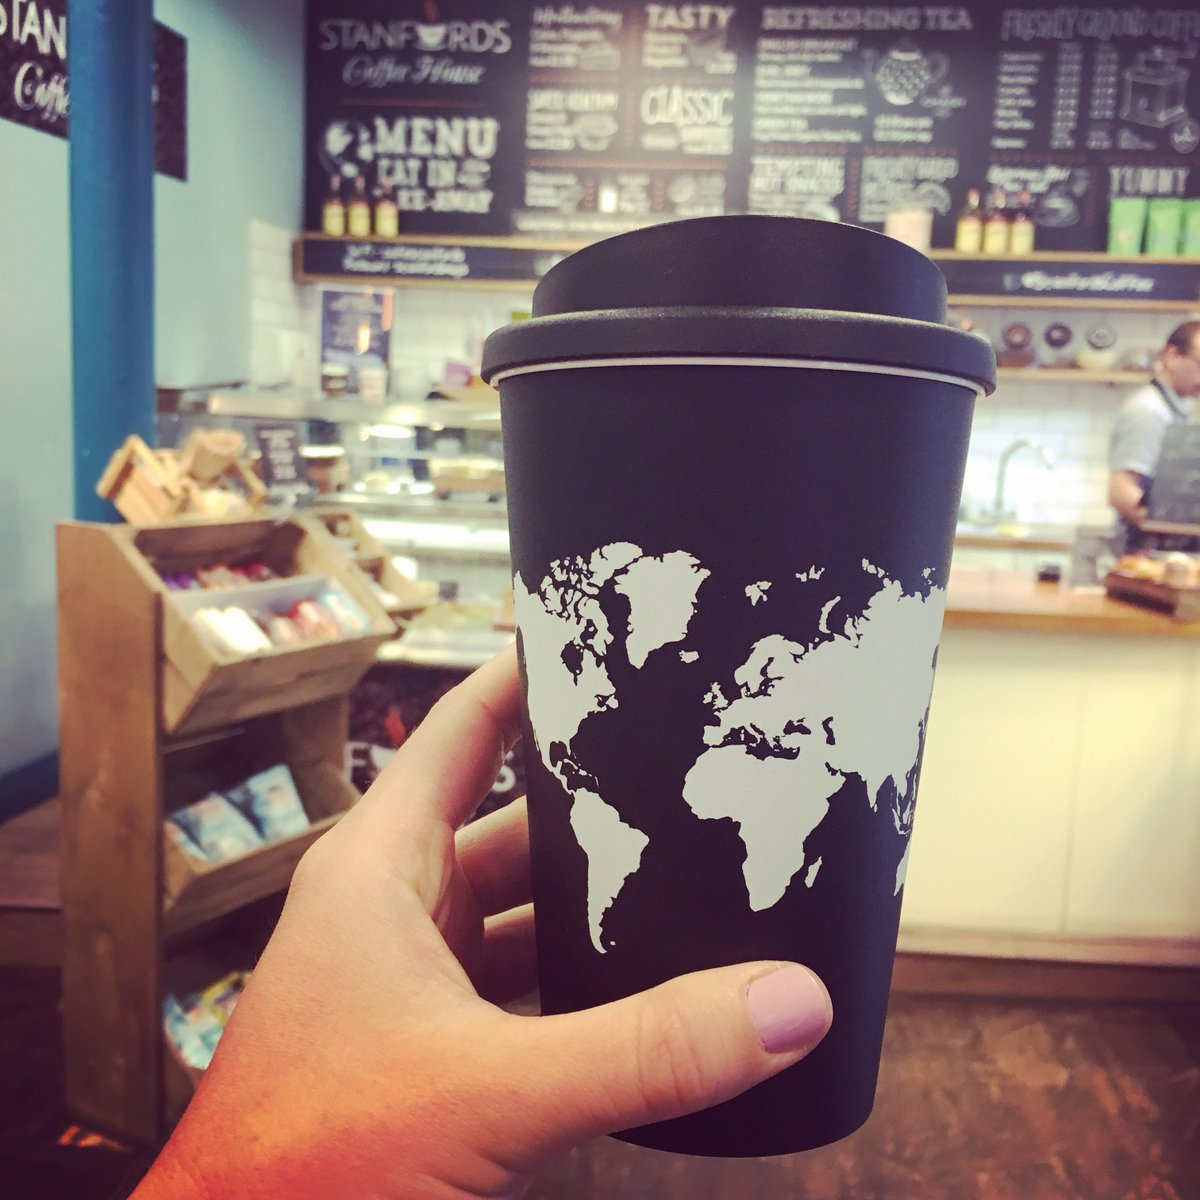 Stanfords on twitter for every re usable stanfords world map for every re usable stanfords world map travel mug sold we donate 50p to explorersagainstextinction realafrica gumiabroncs